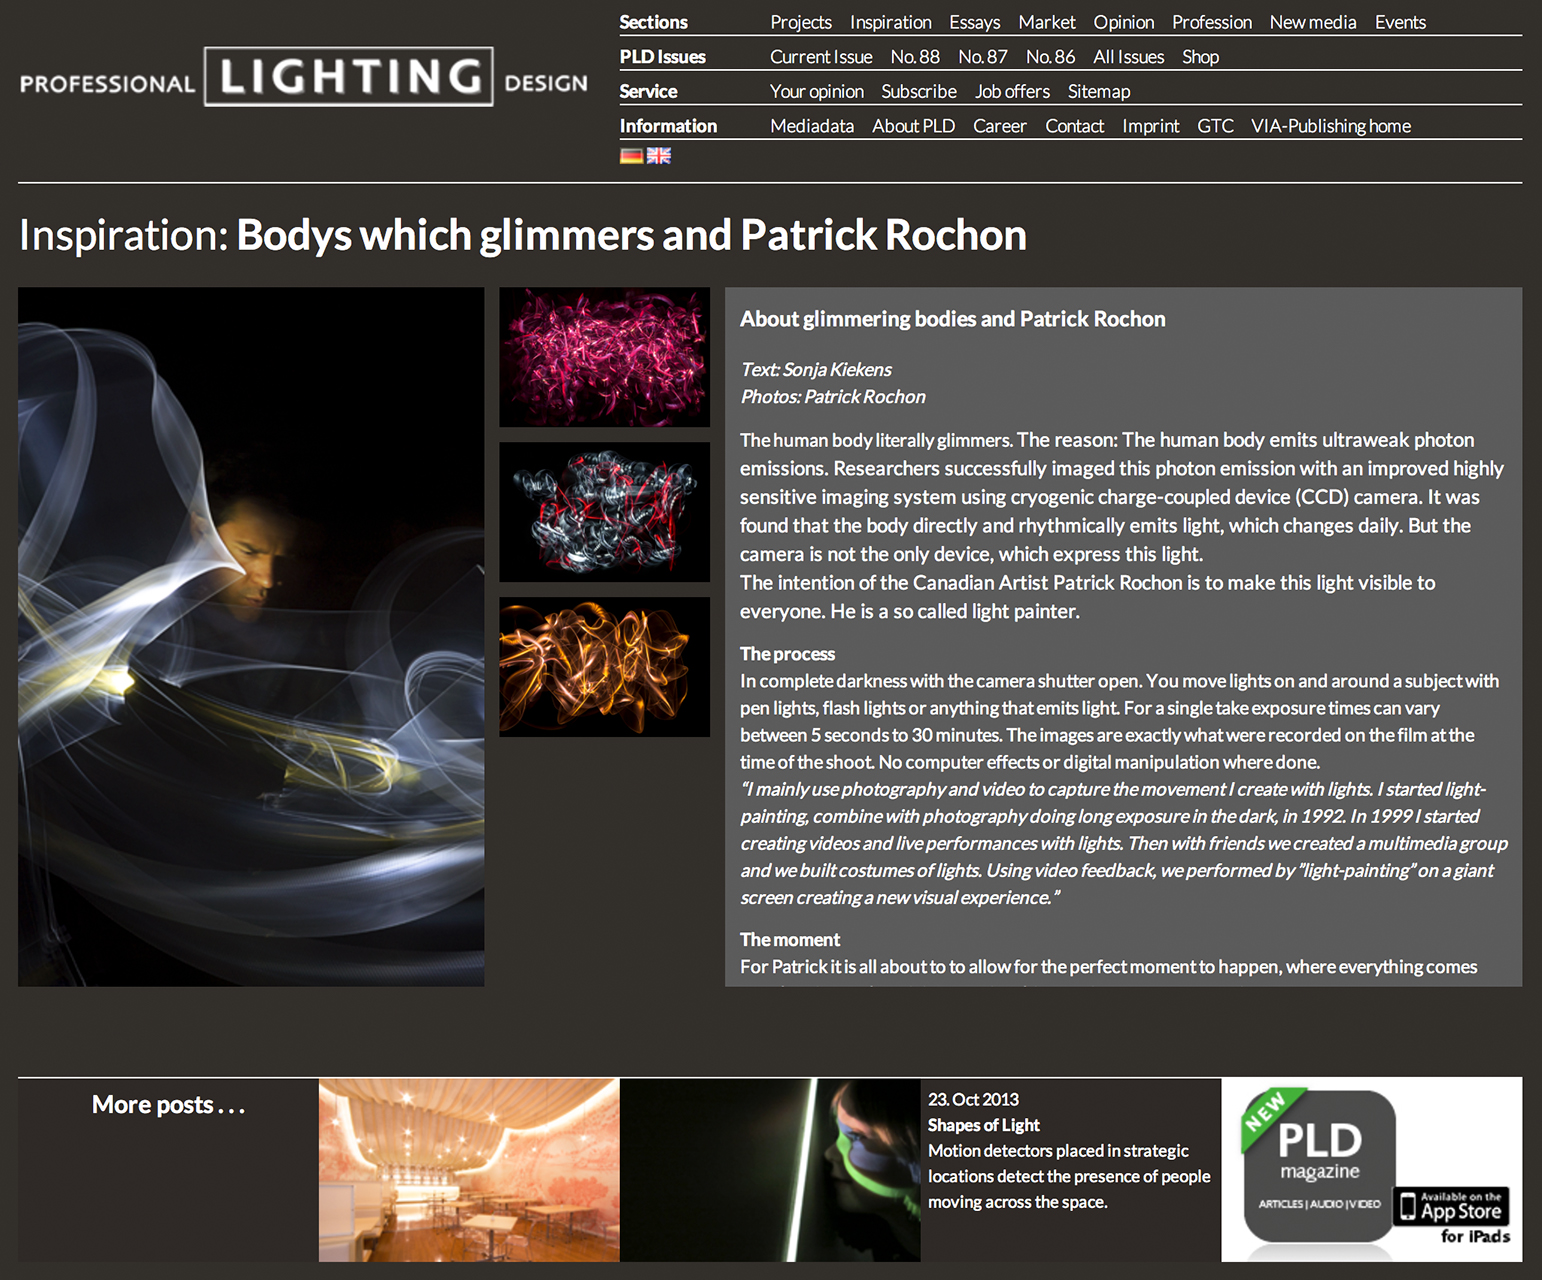 Pro_Lighting_Design_web_Patrick_Rochon.jpg